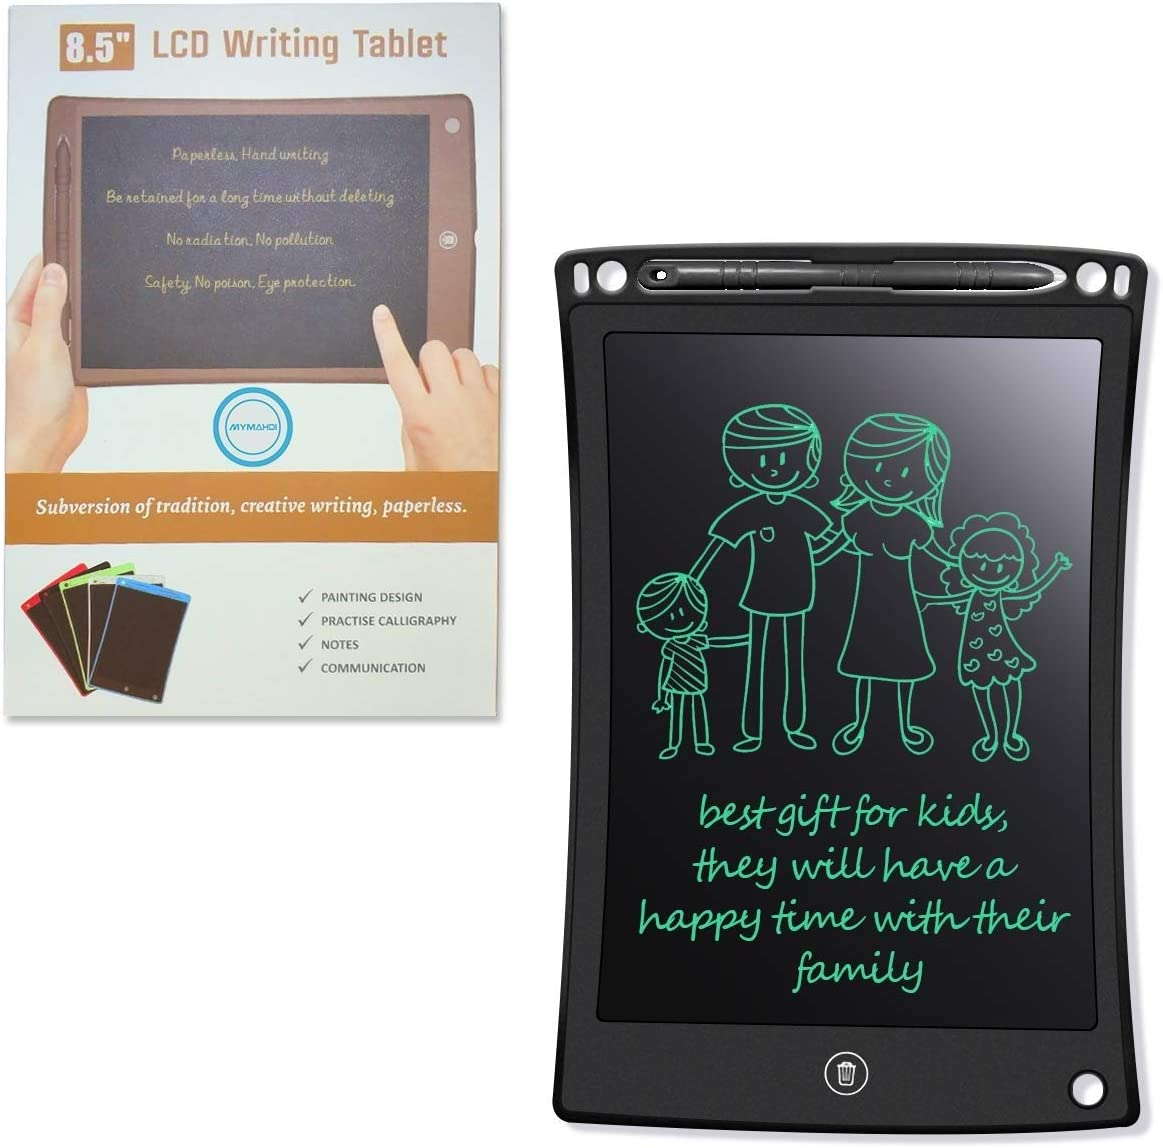 LCD Writing Tablet Doodle Board Color : Green Electronic Drawing /& Writing Board with Smart Writing Stylus School,Office Fridge Or Family Memo for Kids Gifts